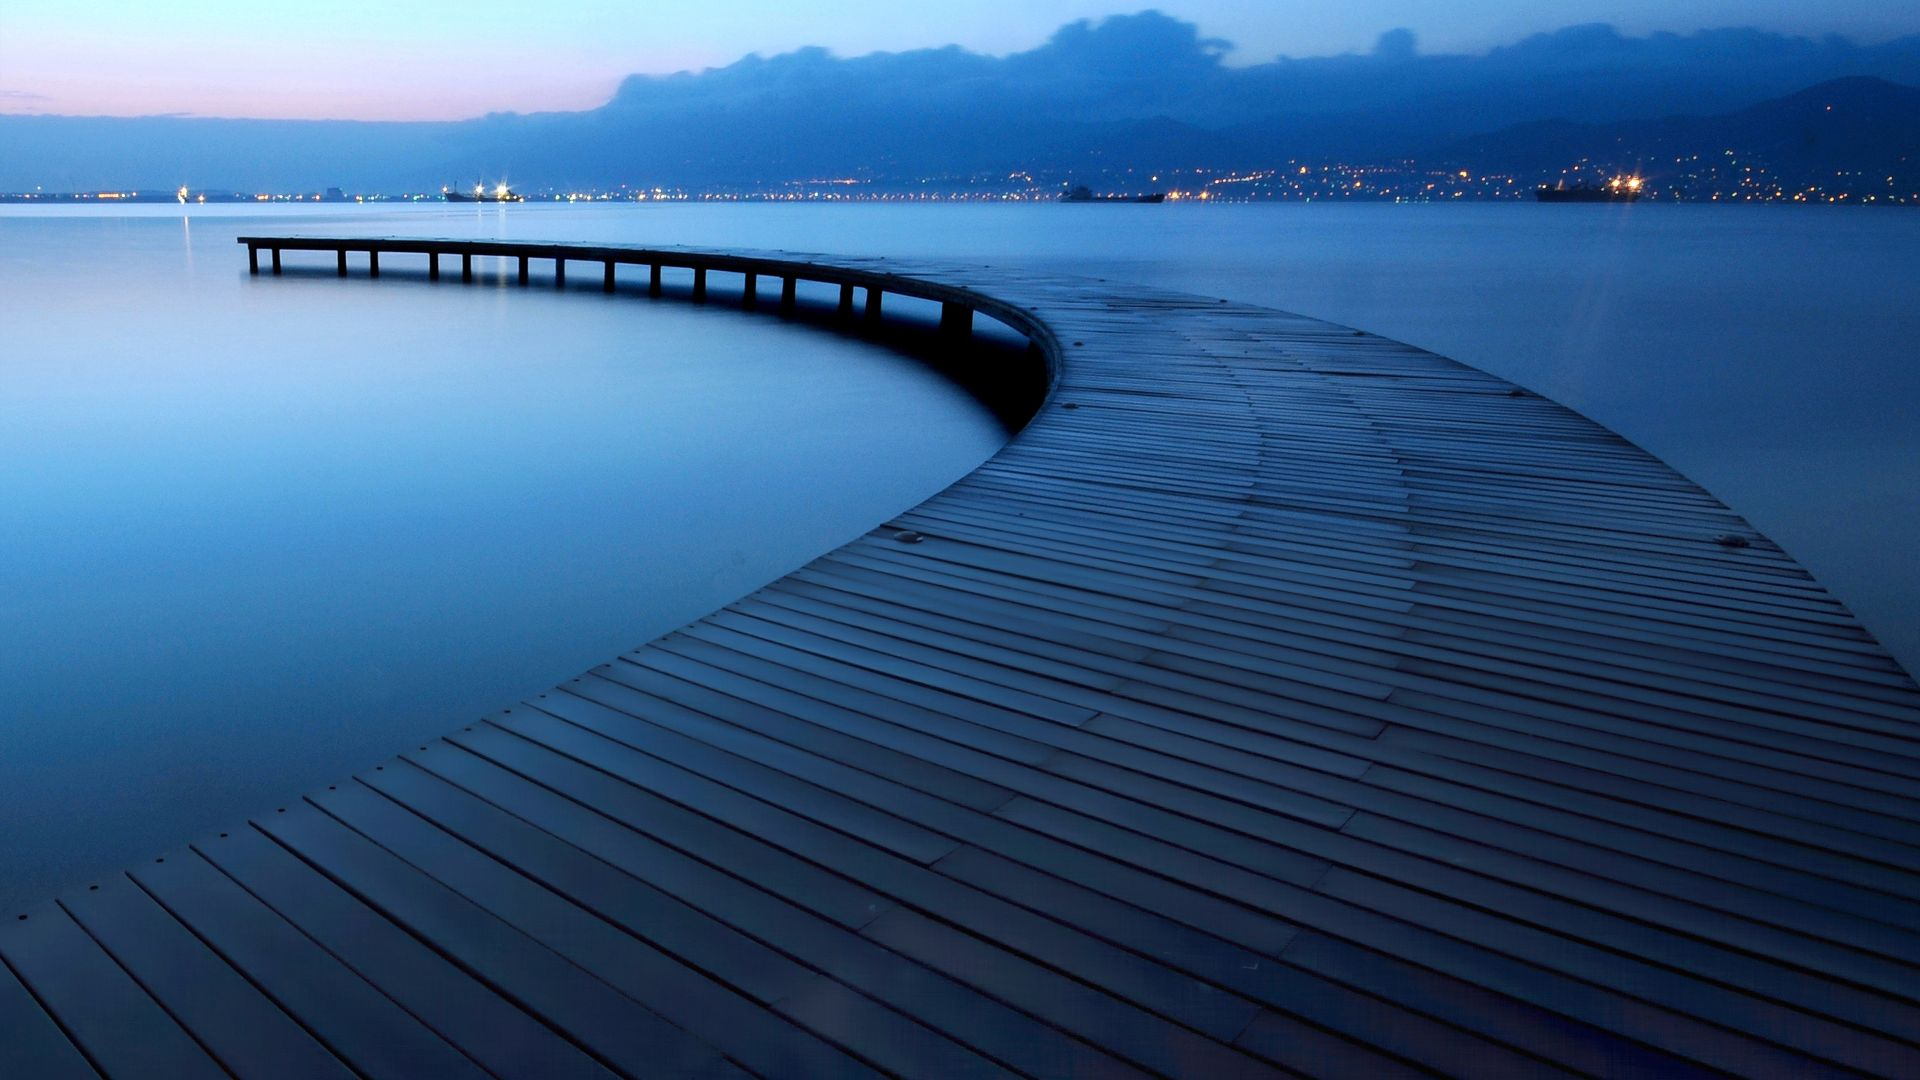 lake, 4k, 5k wallpaper, evening, pier (horizontal)